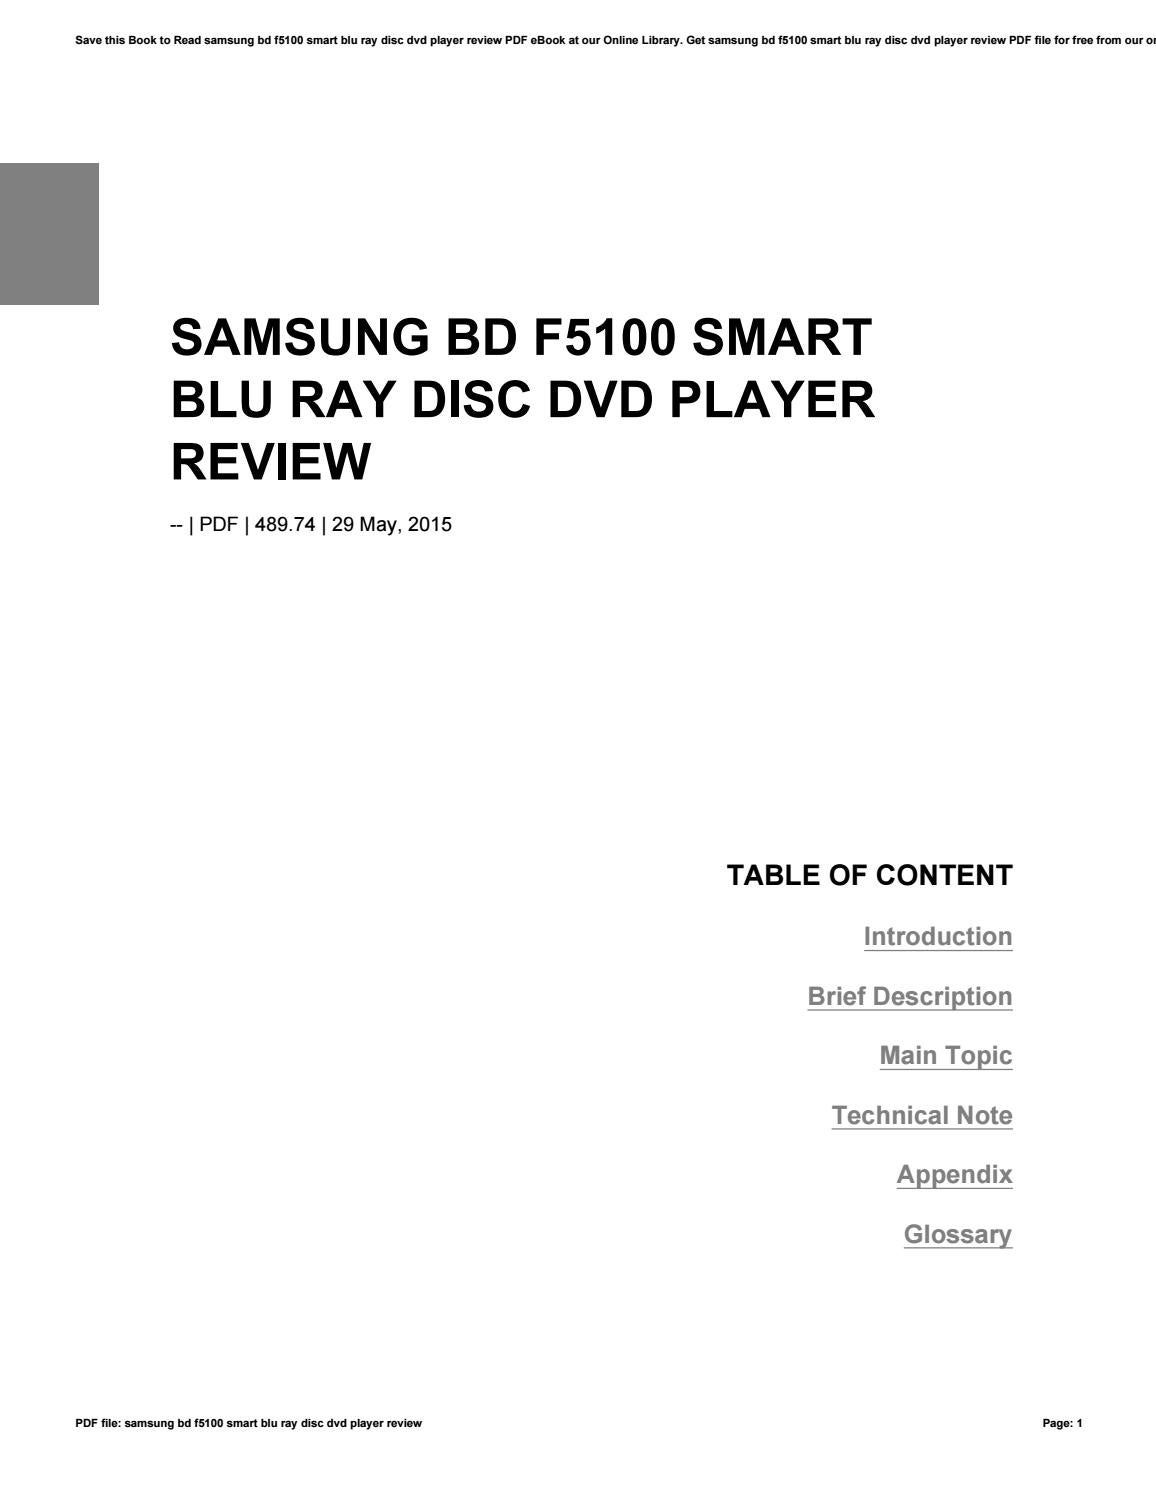 Samsung Bd F5100 Smart Blu Ray Disc Dvd Player Review By Mail4 Us25 Bluray Issuu